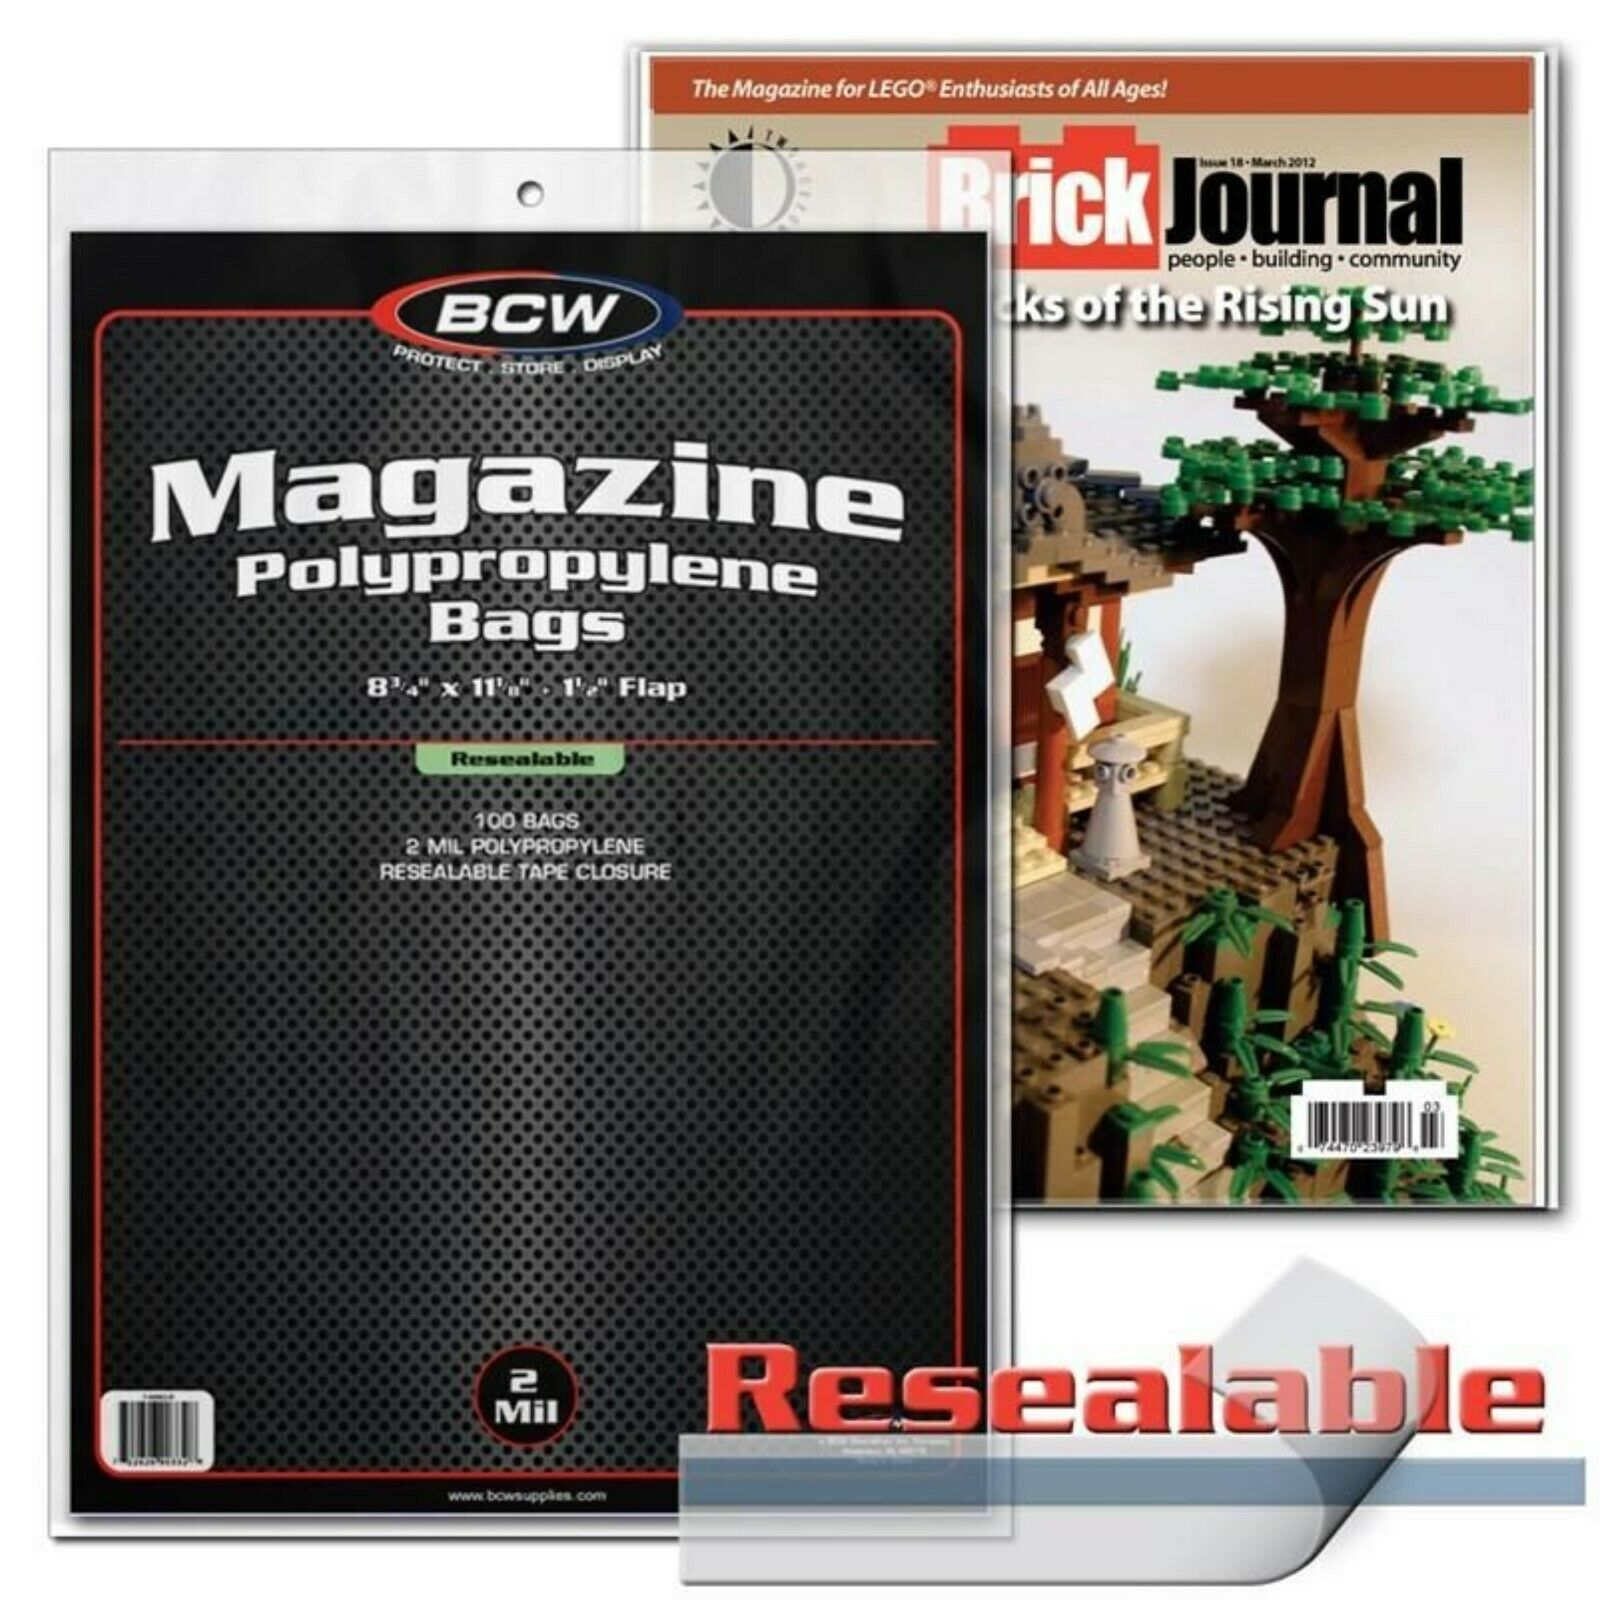 Primary image for 100 BCW Resealable Magazine Bags Archival Protective Sleeves 8 3/4 x 11 1/8 New